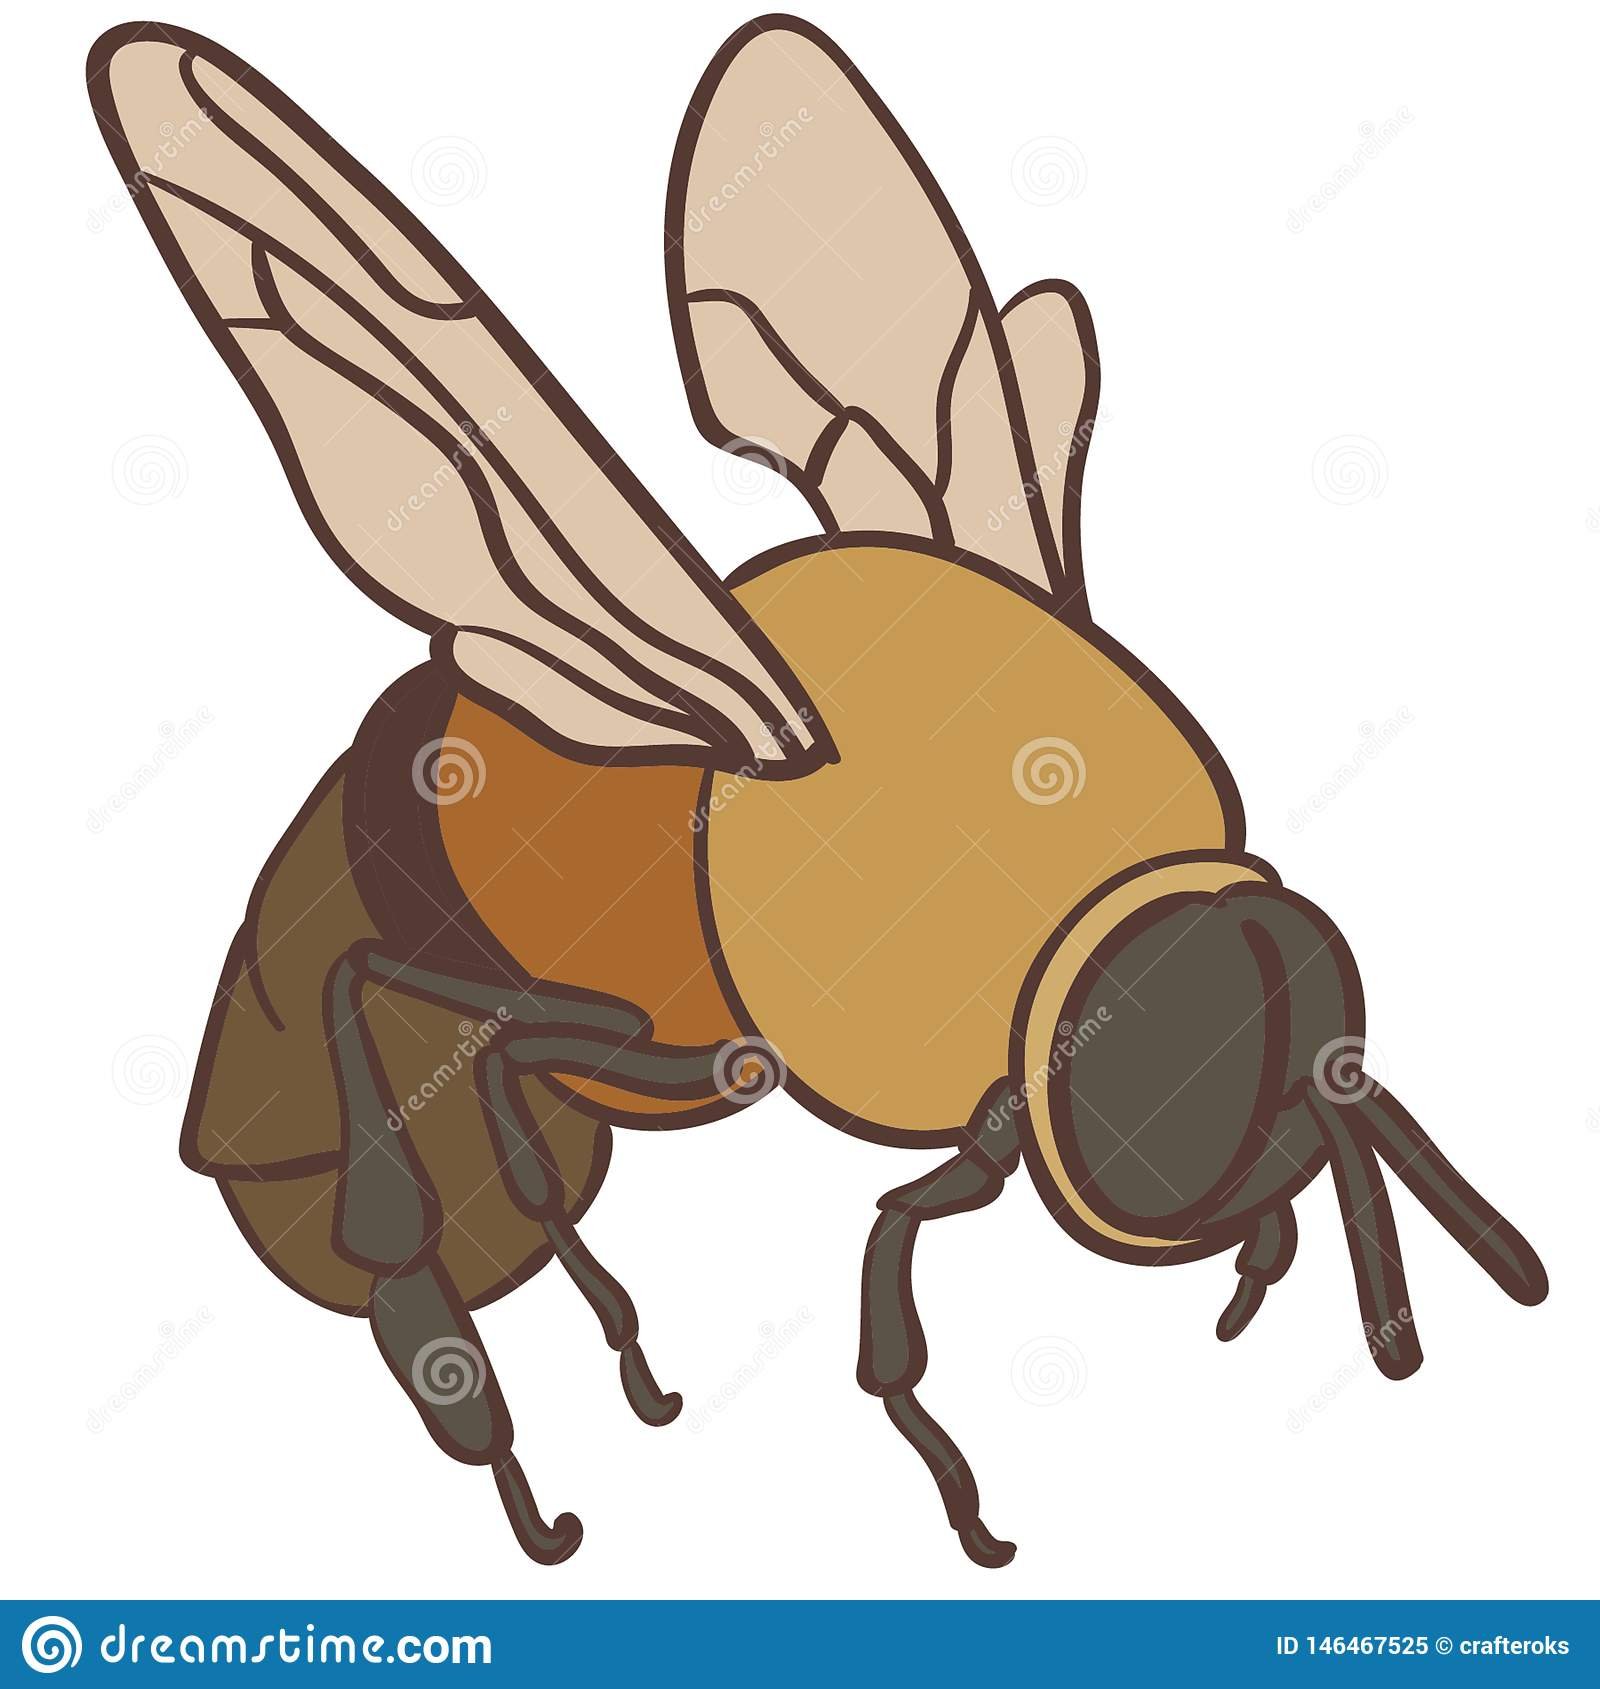 Bee Digital Stock Illustrations – 1,155 Bee Digital Stock